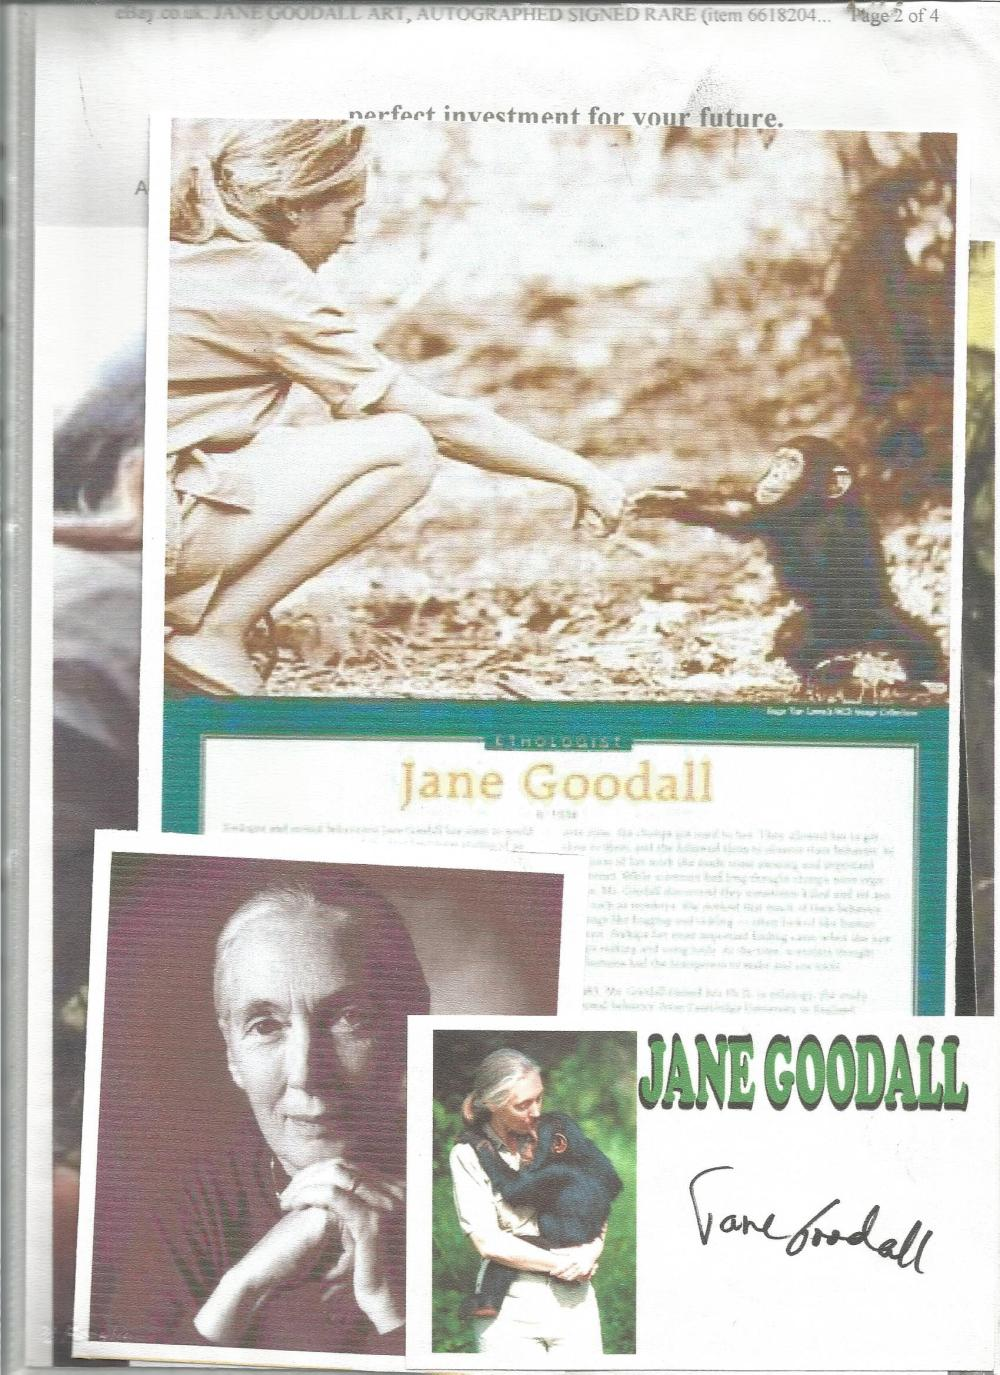 Jane Goodall signed card with biography page. Good Condition. All signed pieces come with a